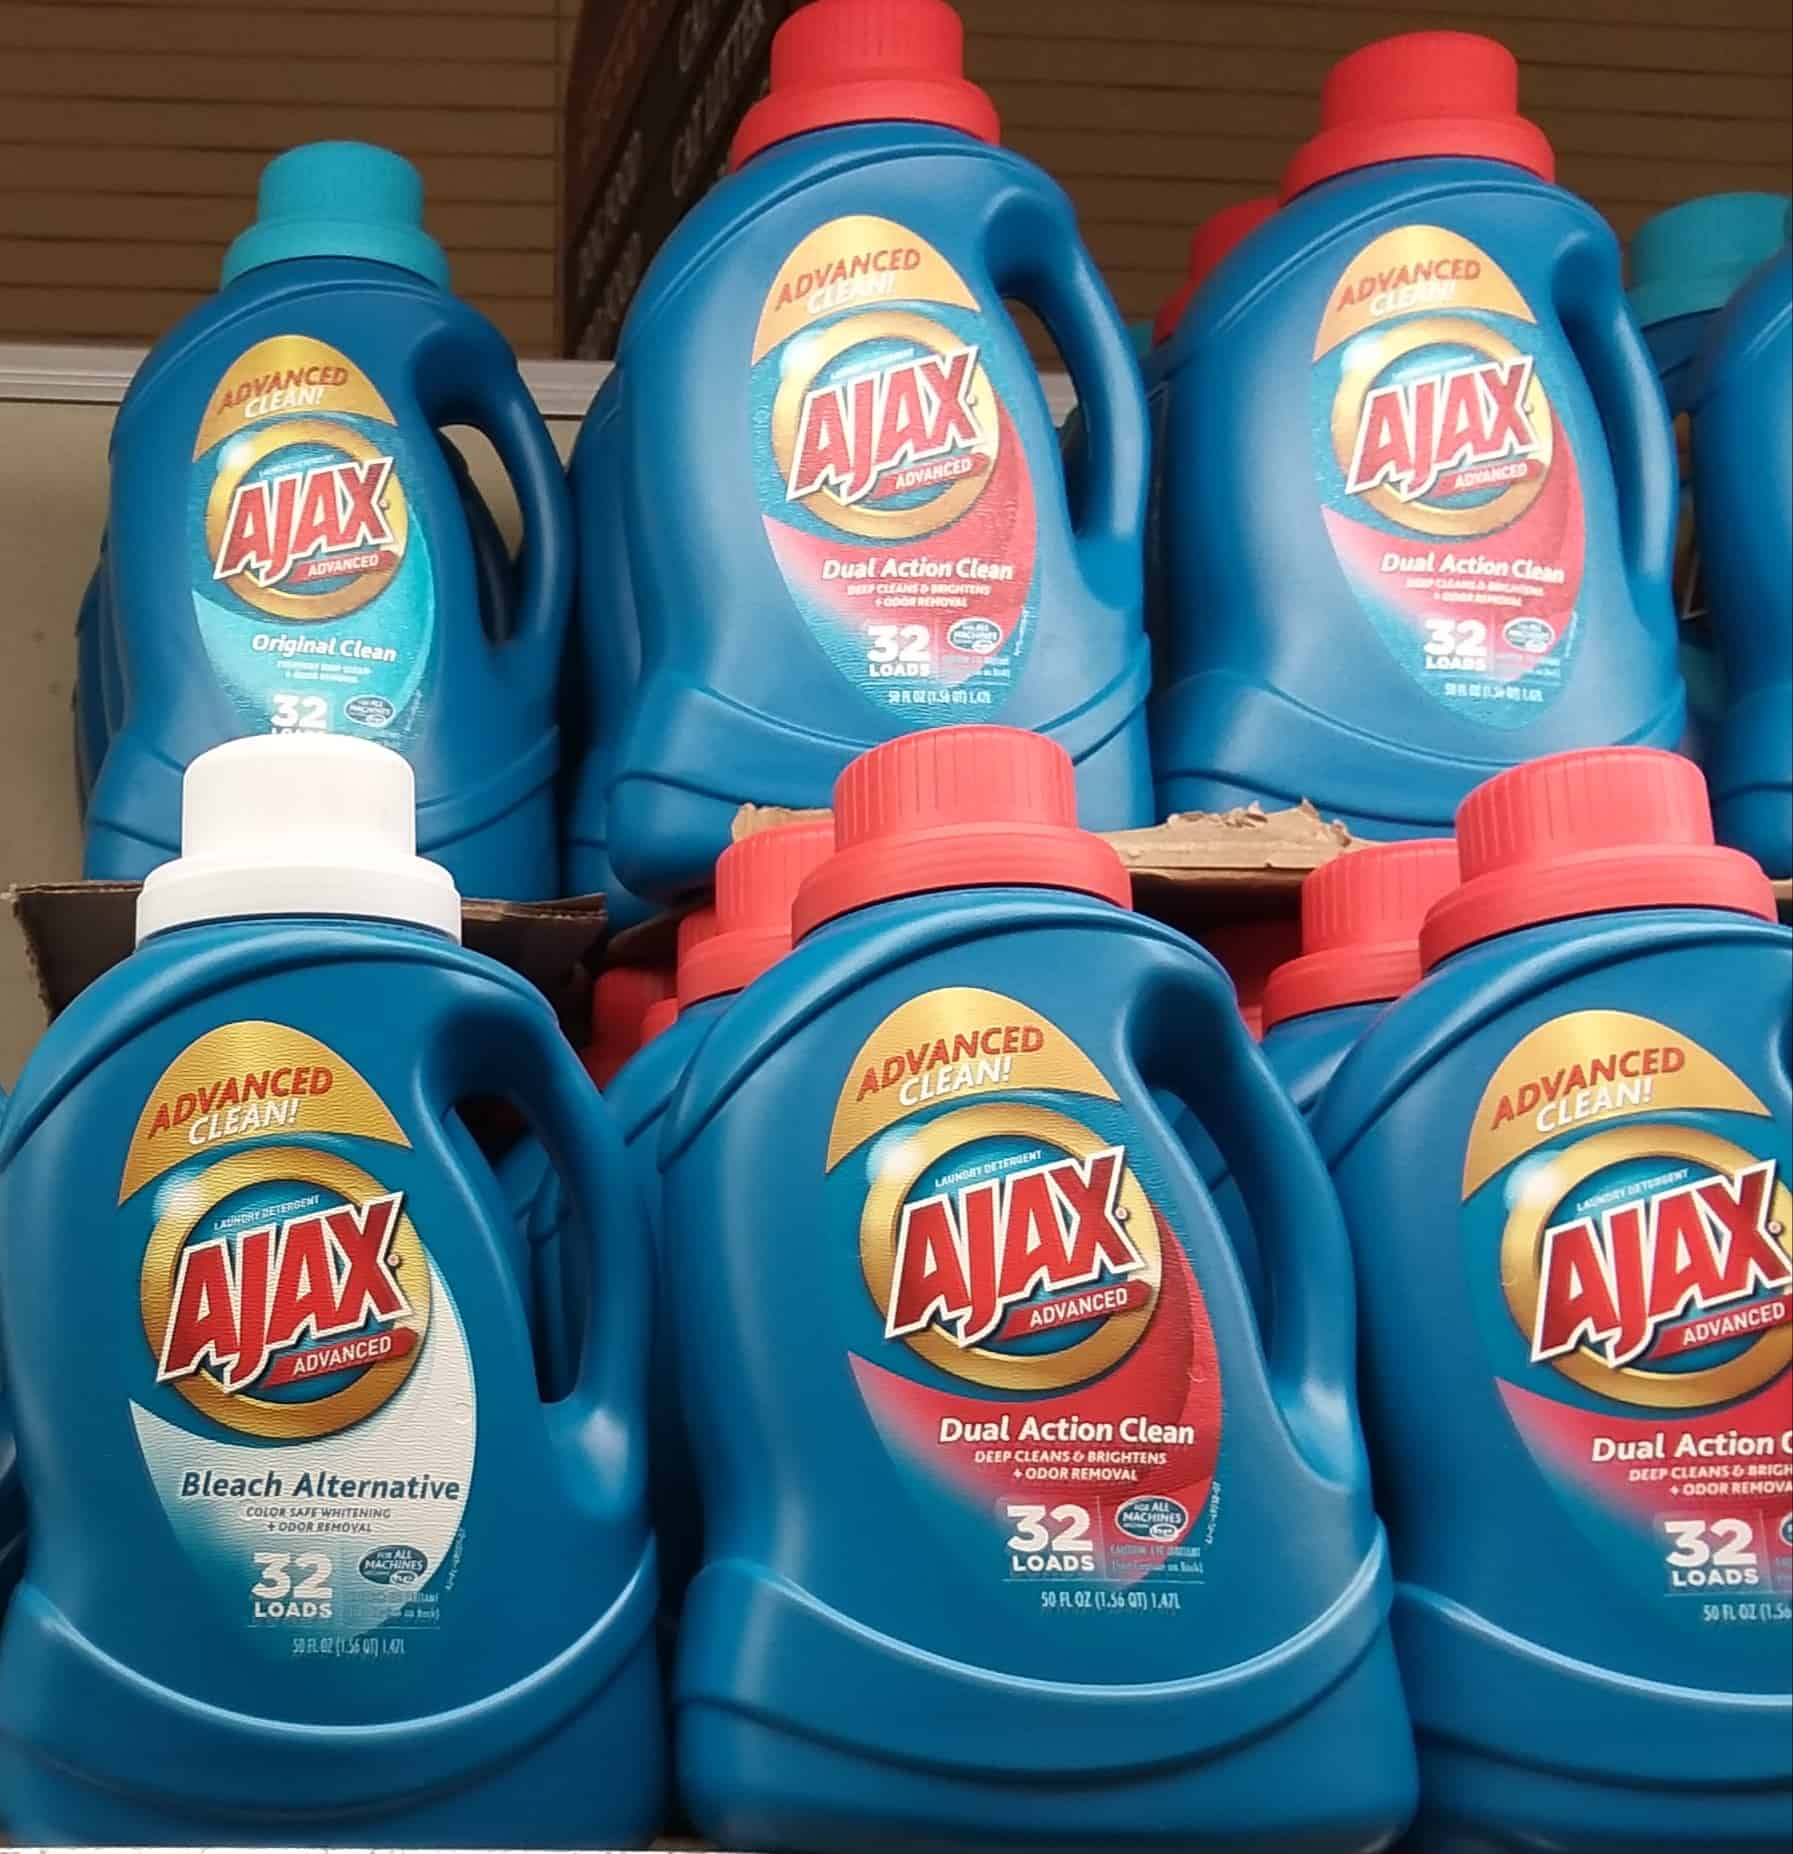 Ajax Laundry Detergent 0 99 At Walgreens Ends 6 6 Philly Coupon Mom